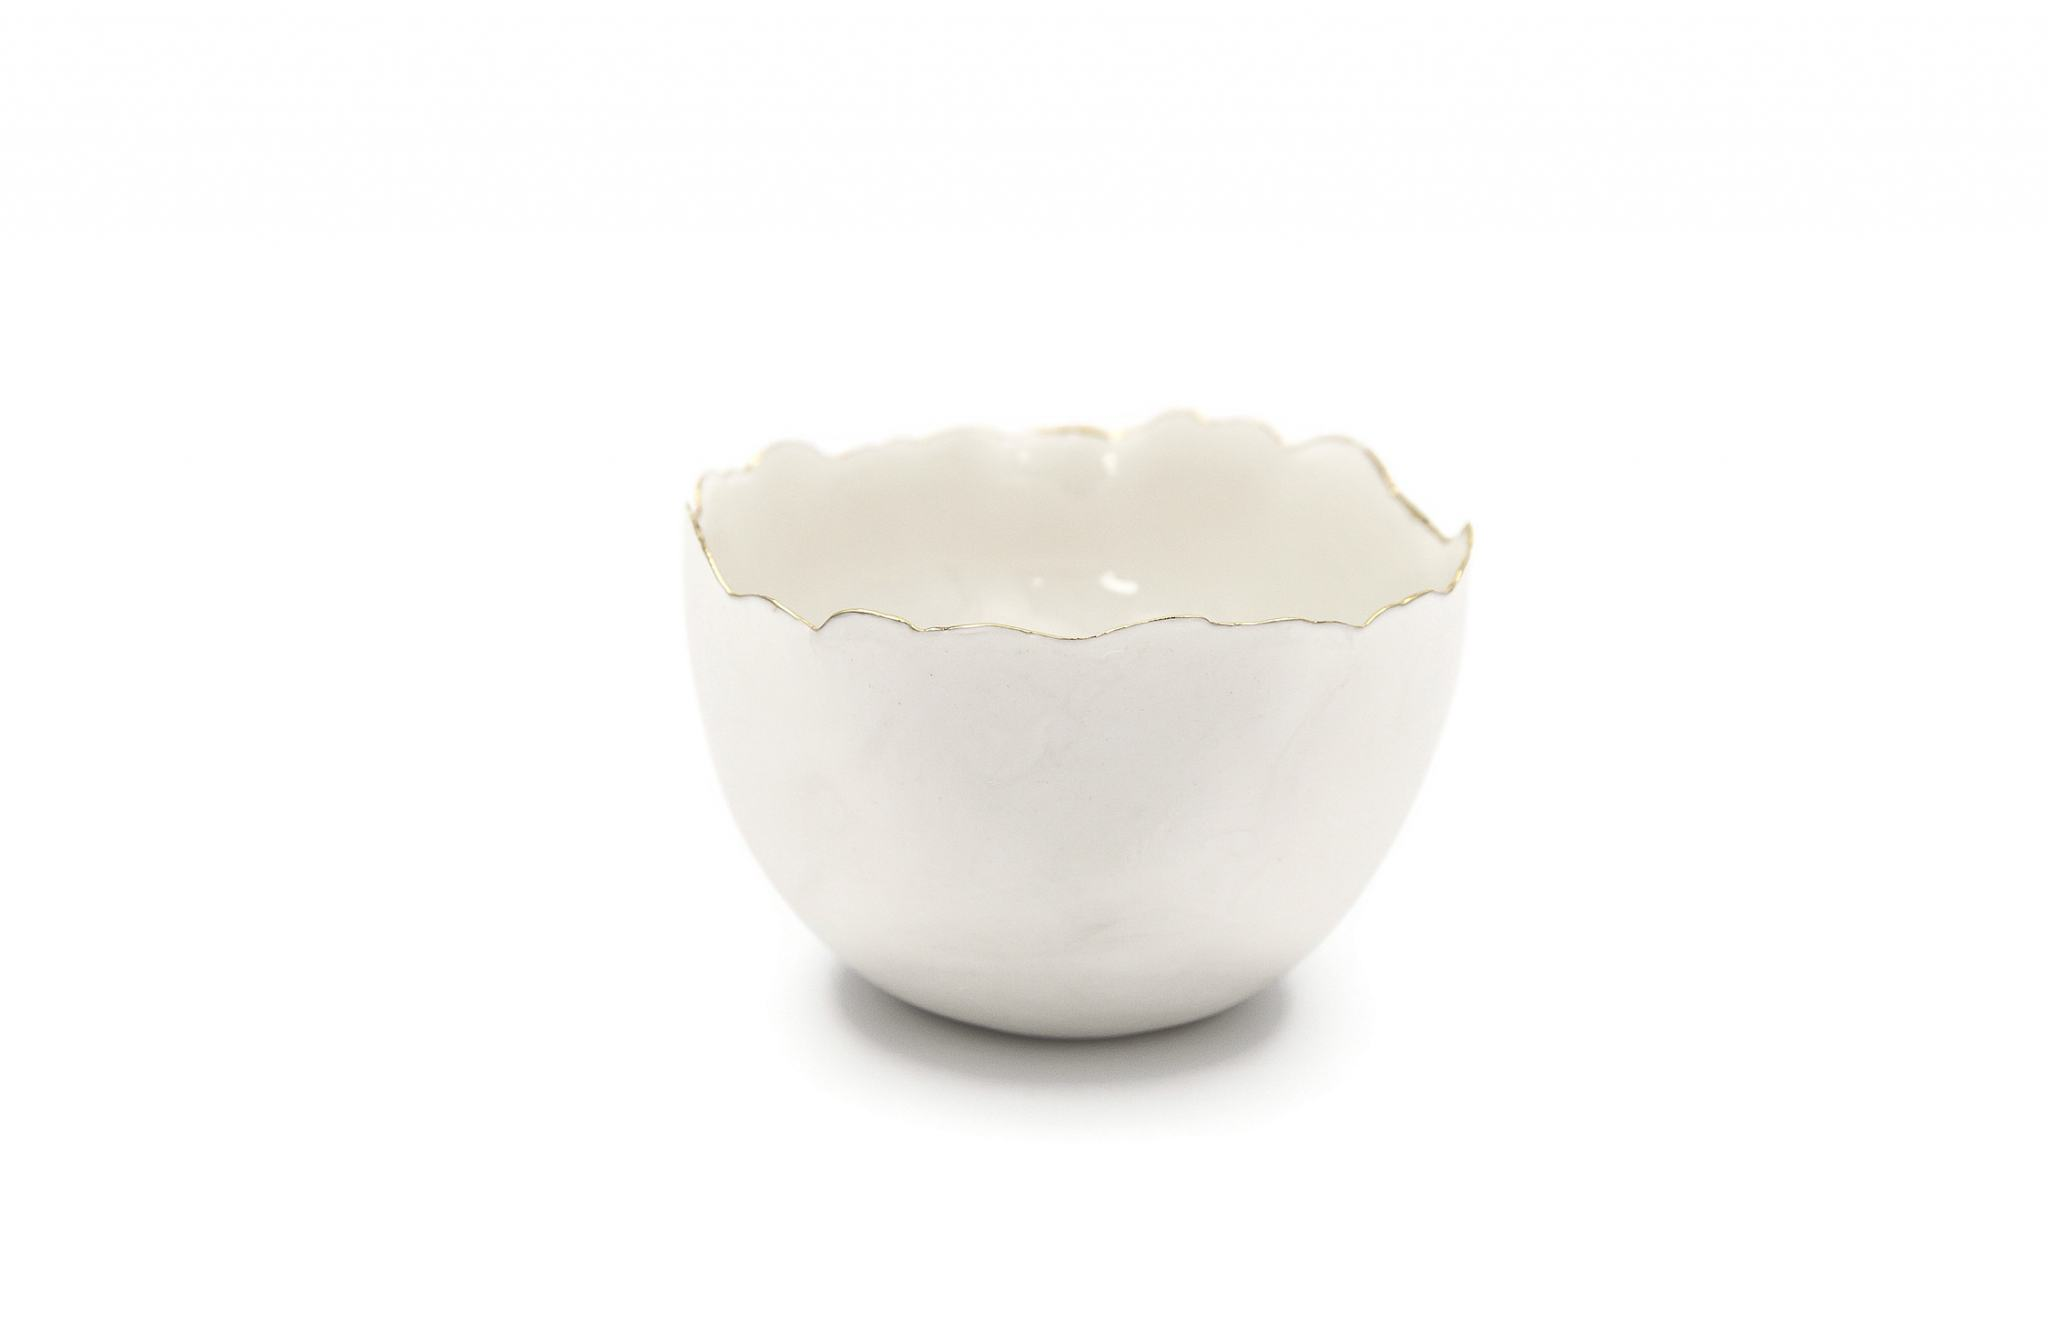 Collectible Porcelain White Bowl